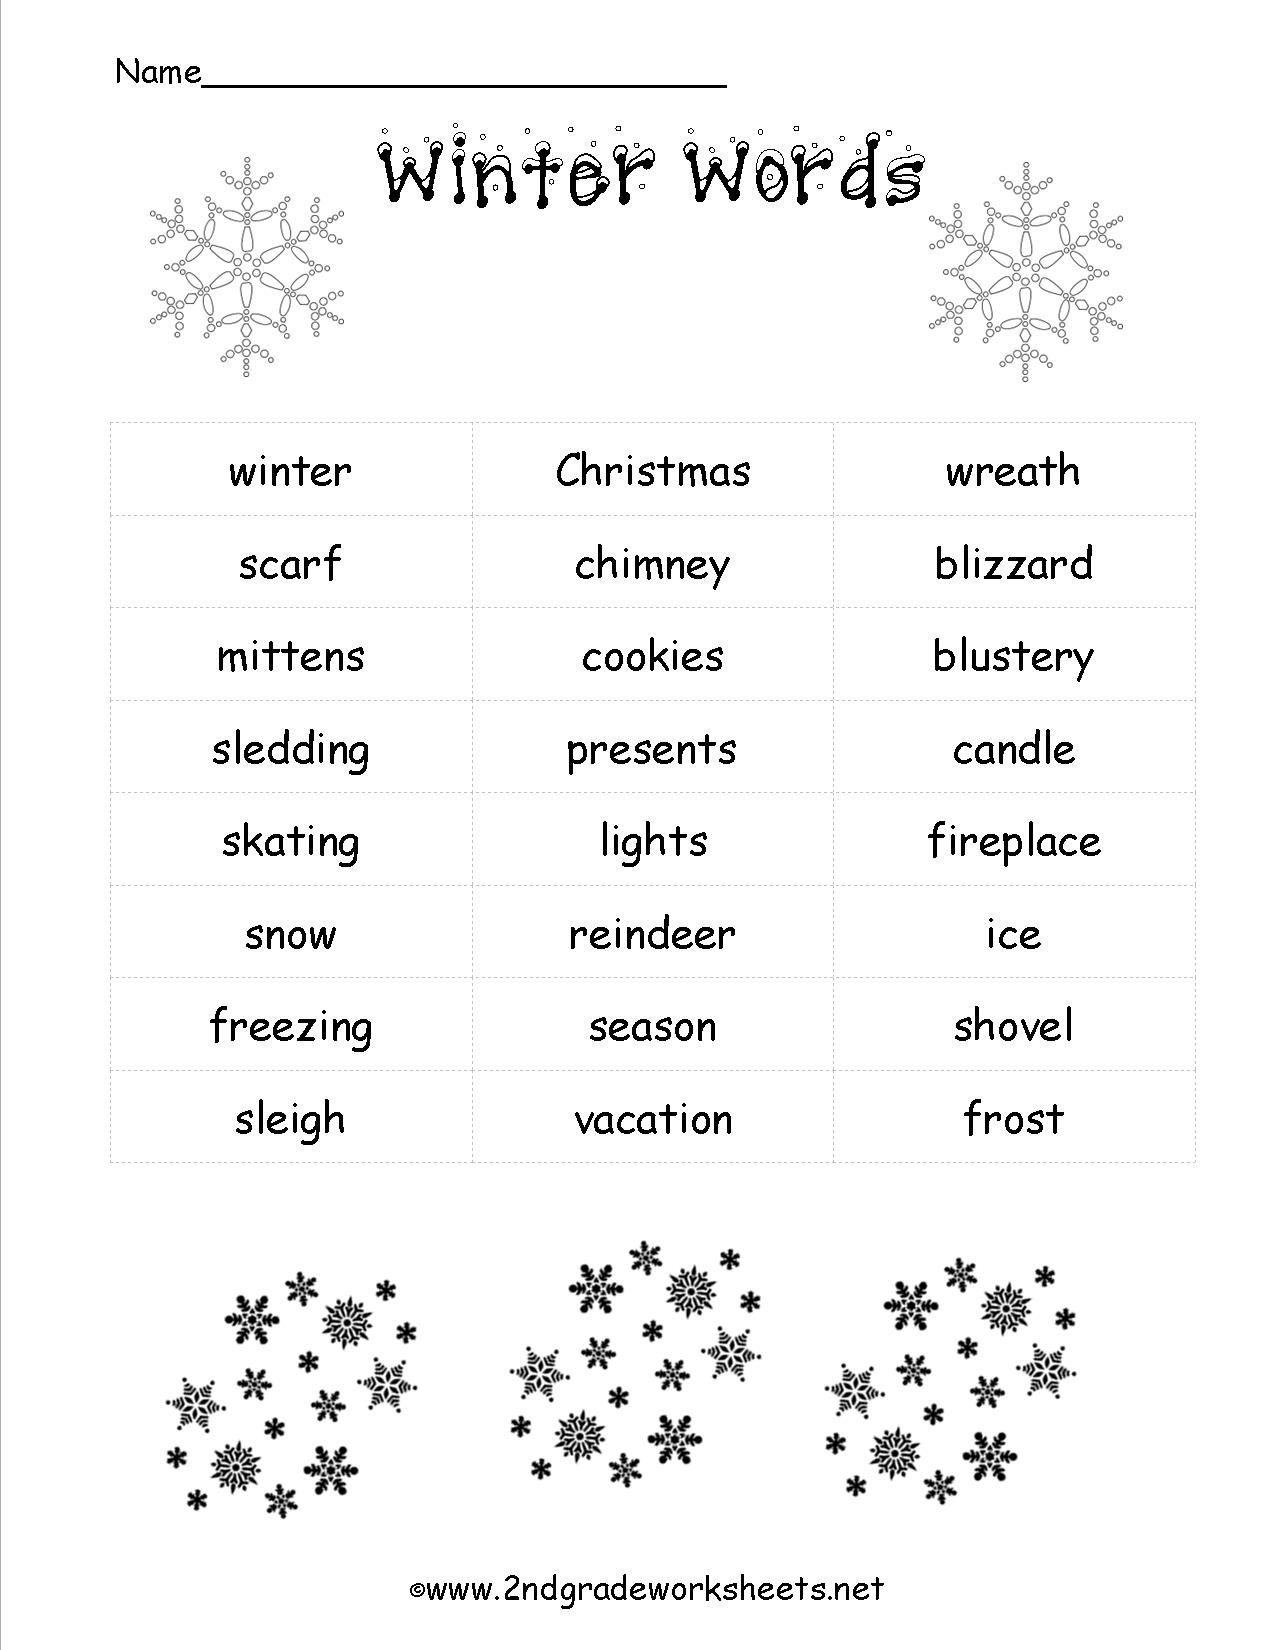 Image Result For Winter Weather Words